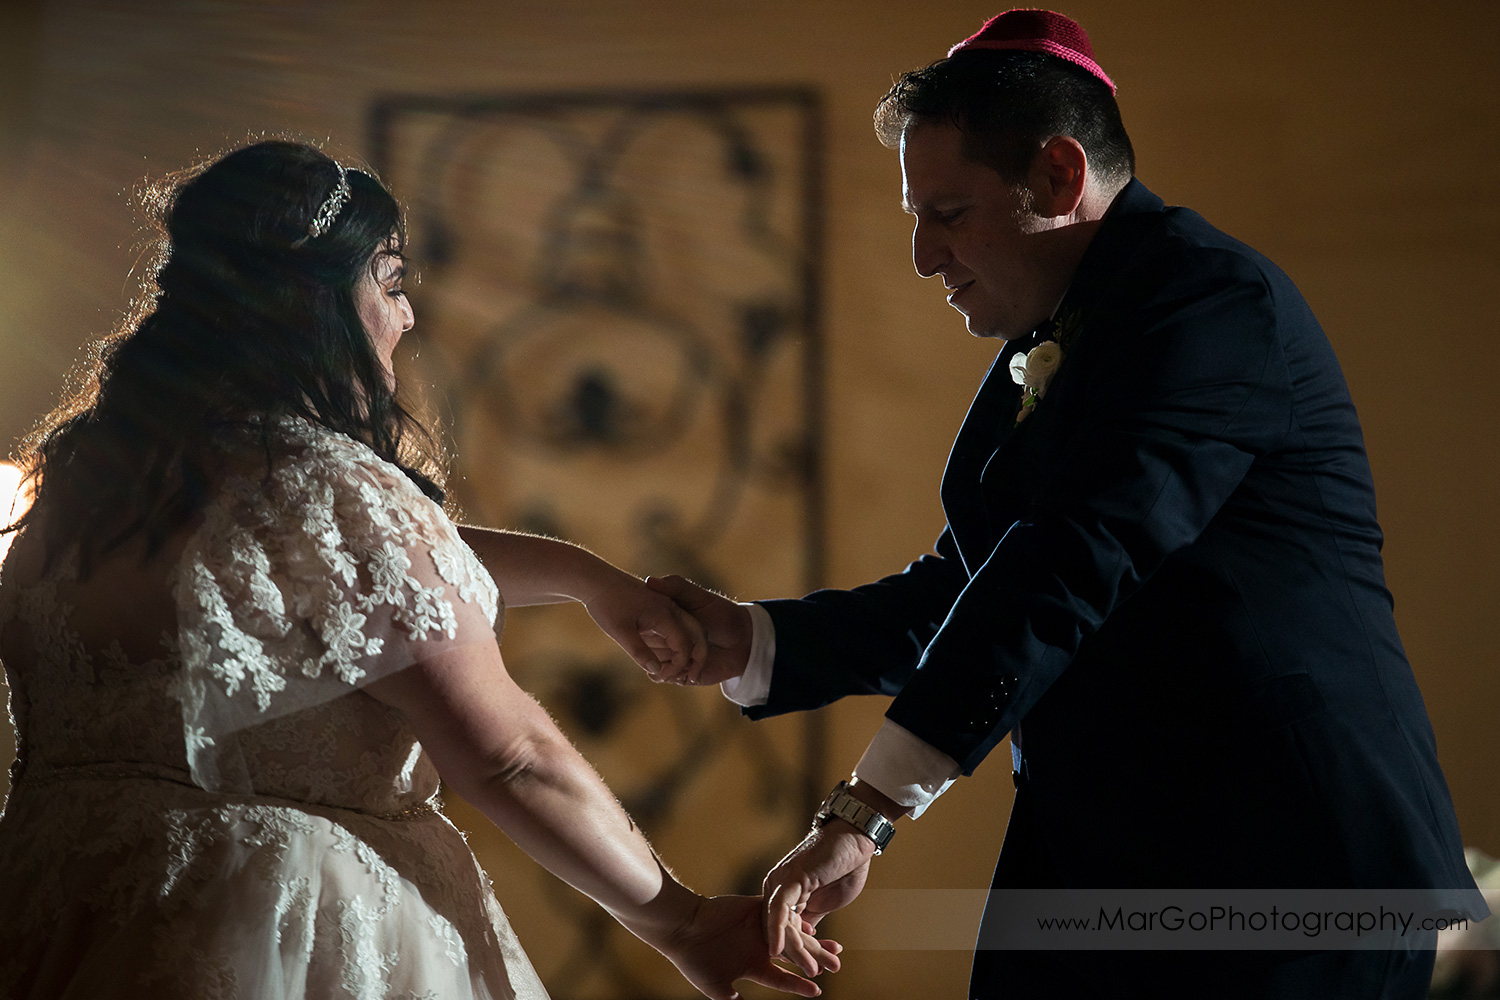 jewish bride and groom during first dance at wedding reception at Livermore Garre Vineyard and Winery